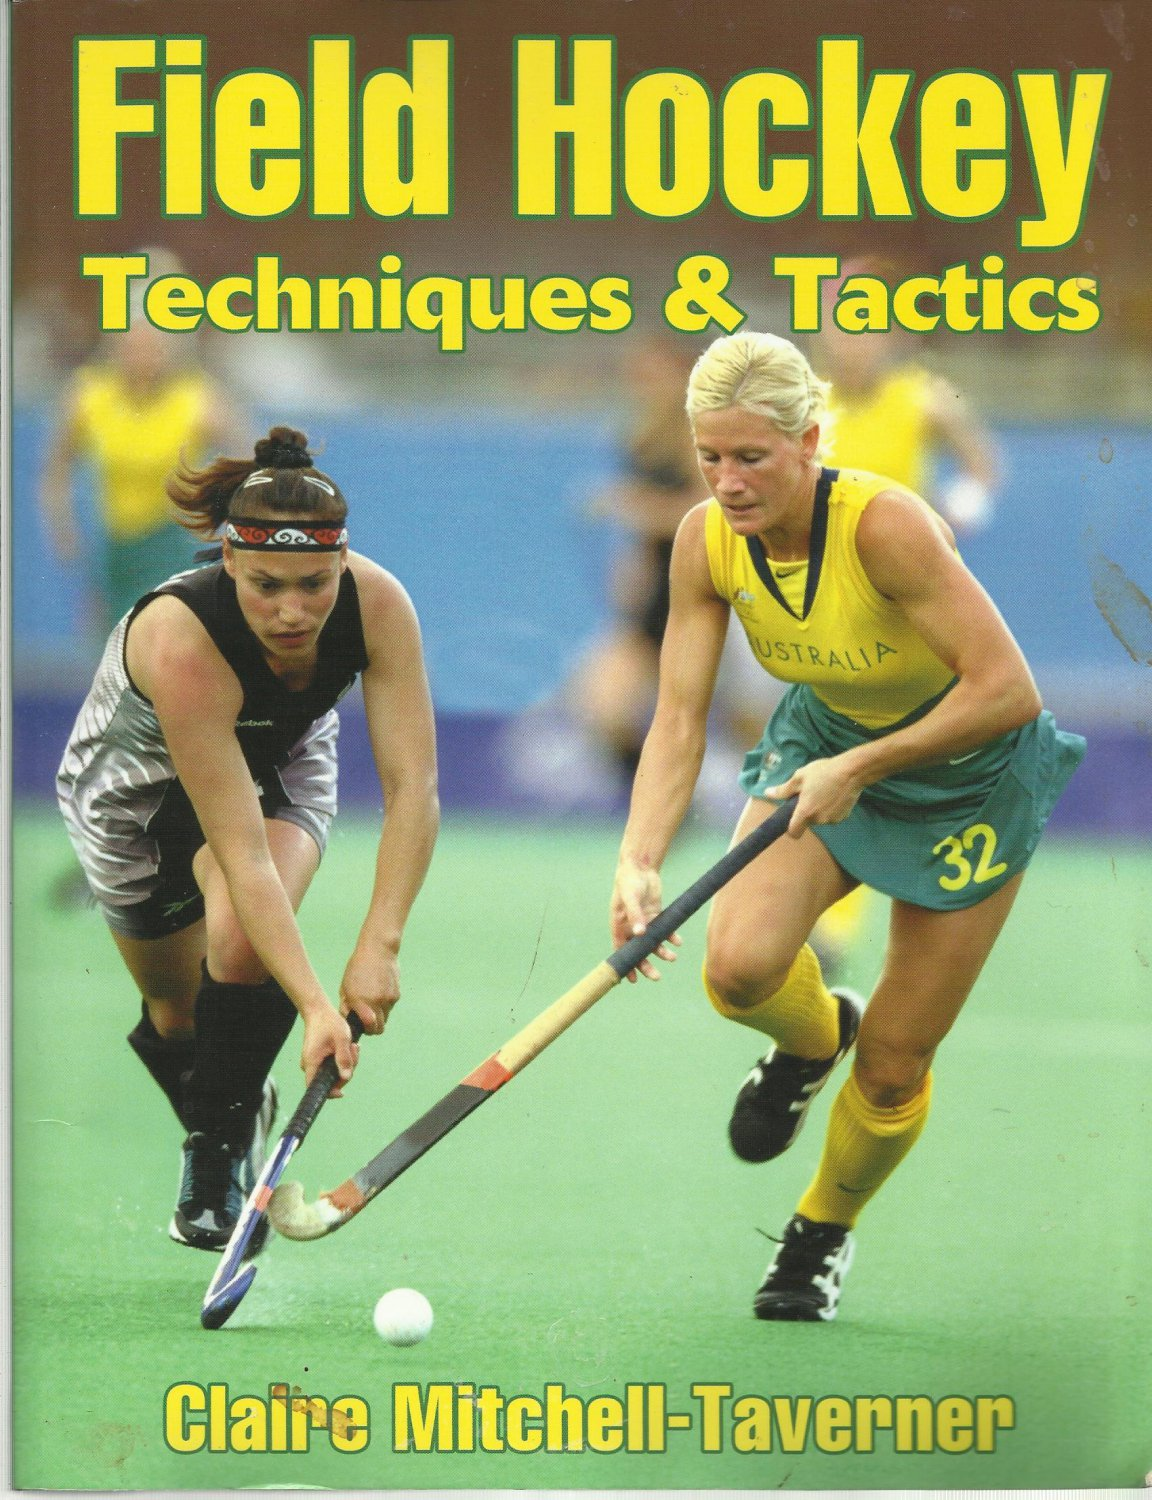 Field Hockey Techniques & Tactics Claire Mitchell-Tayverner